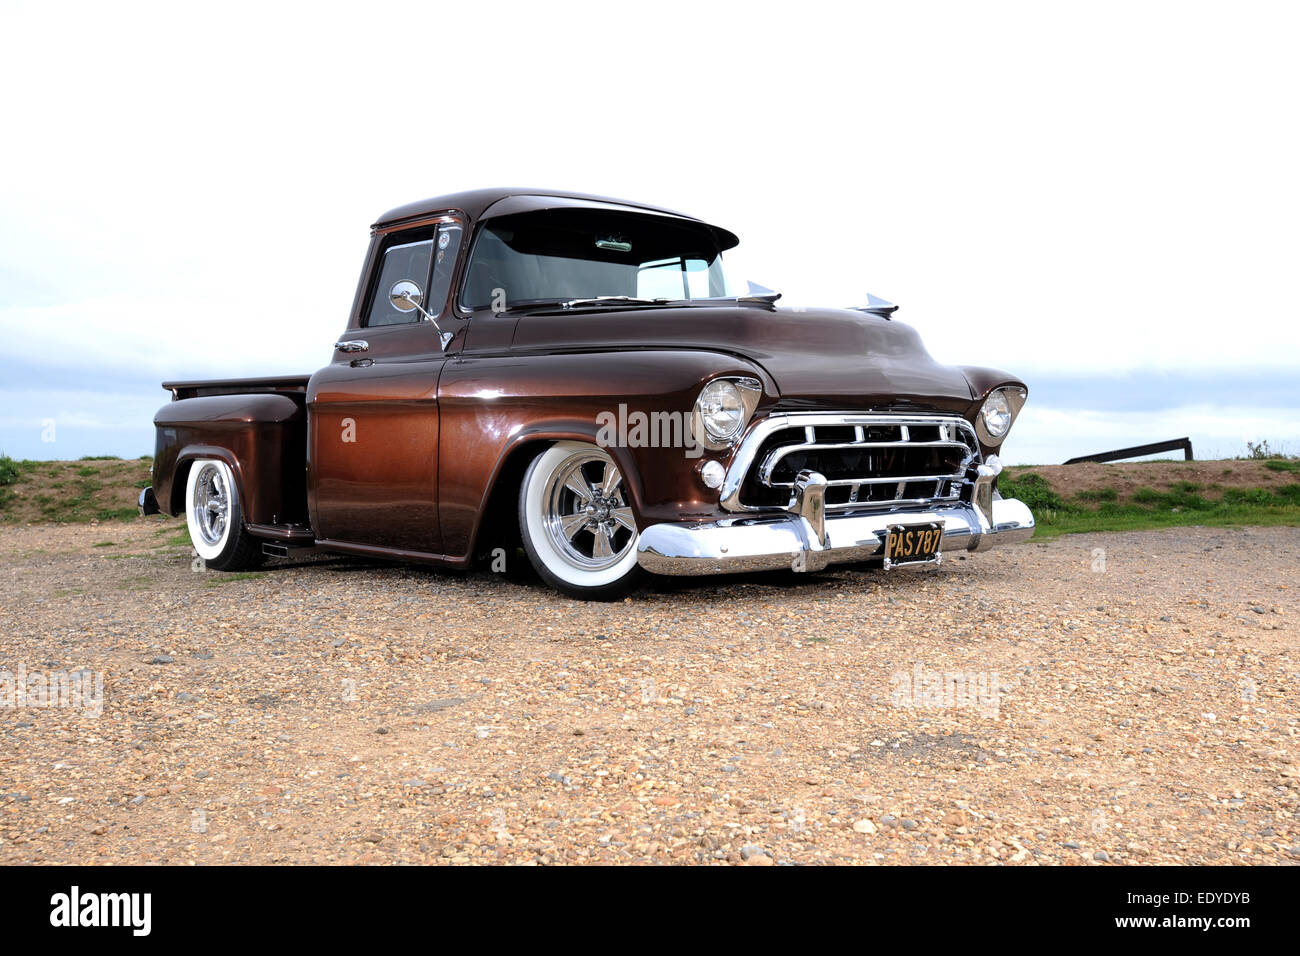 Modified 1957 chevy 3100 step side pickup truck stock image